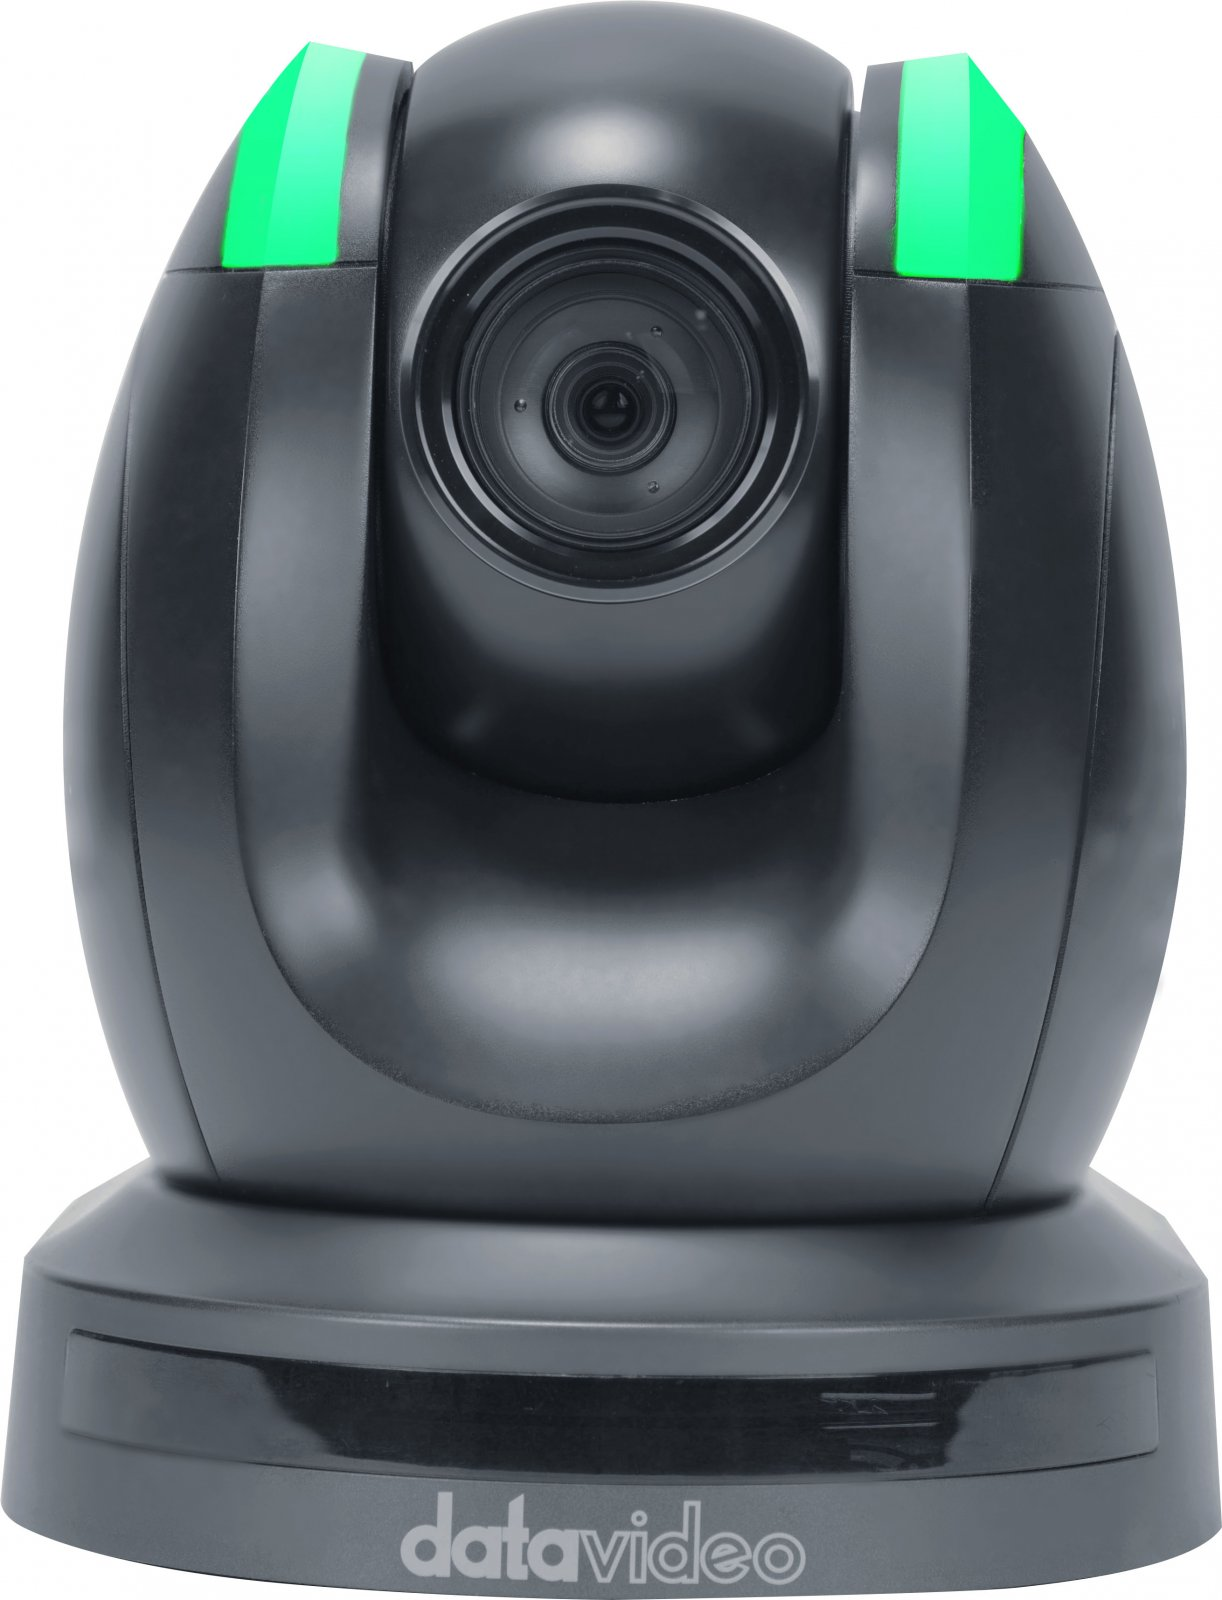 Data Video PTC-150T - HD/SD SDI PTZ Camera - Black